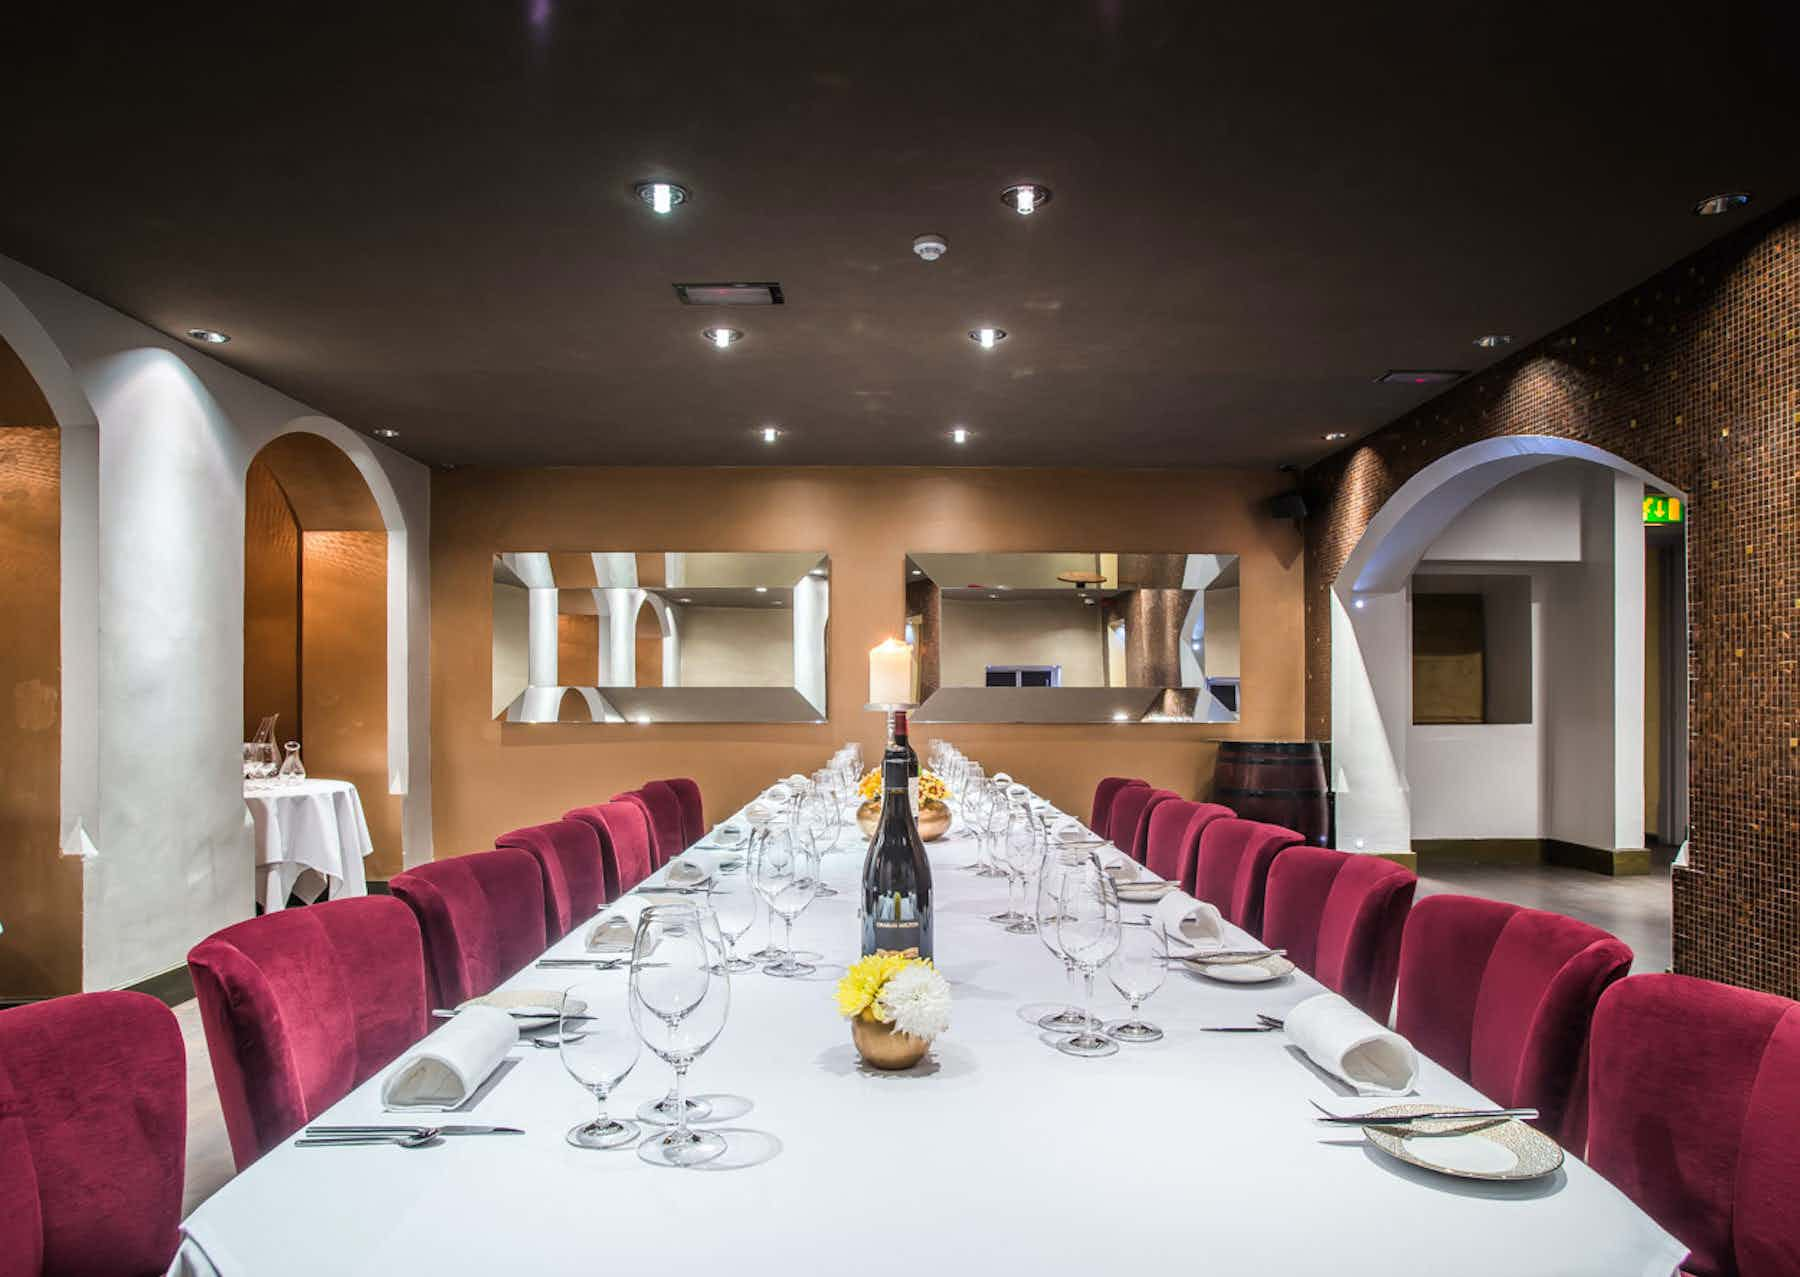 LaCave - Private Dining, event & board room, Park House Restaurant & Fine Wine Bar